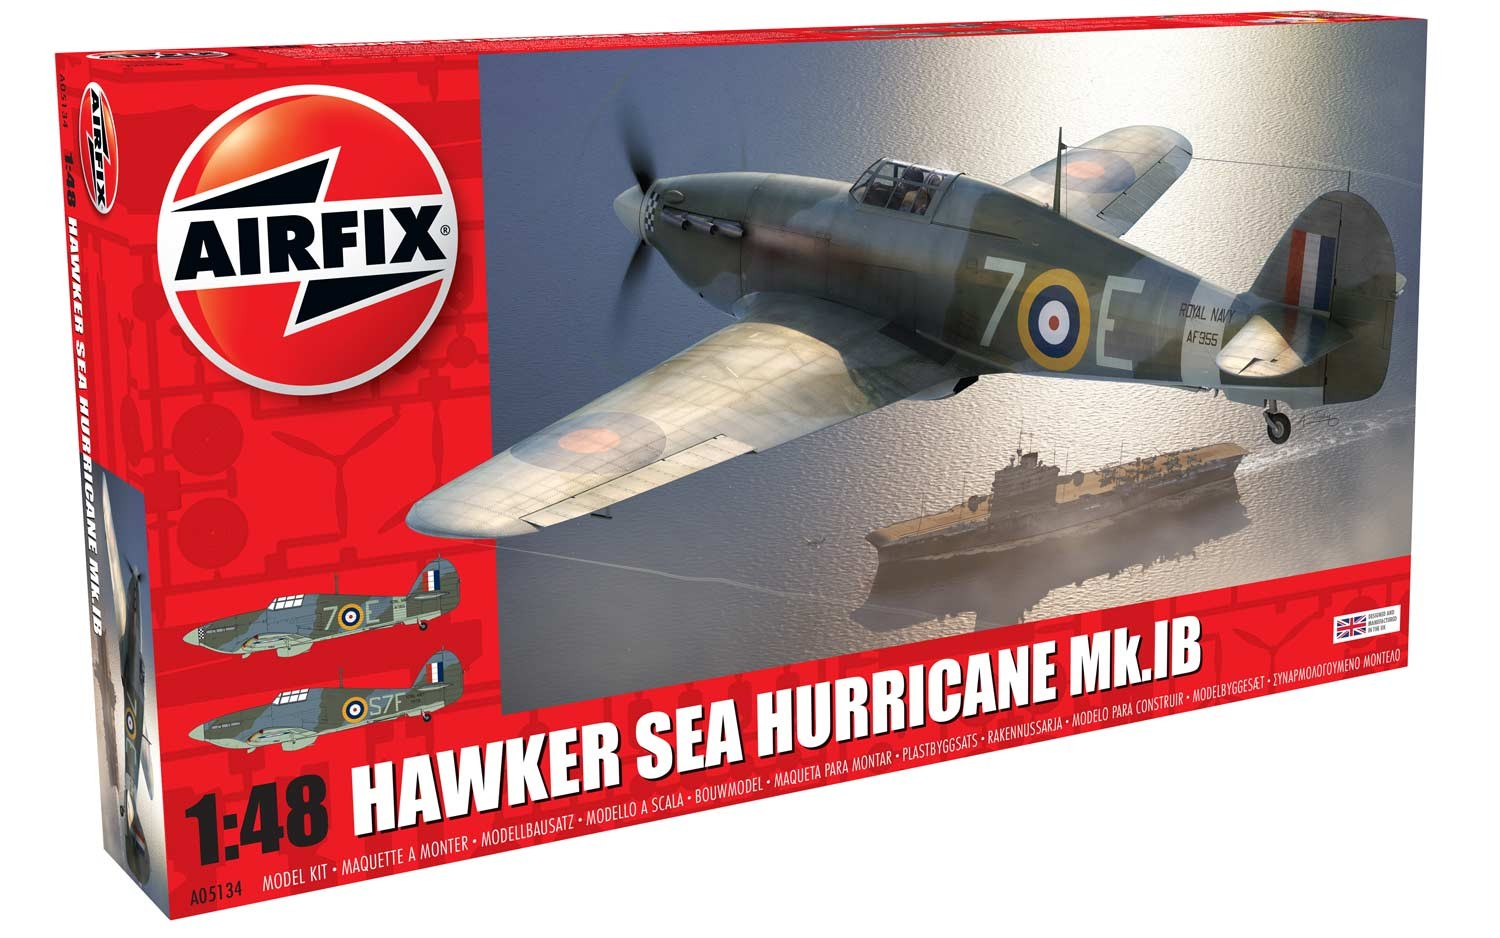 Airfix 1\\48 Hawker Sea Hurricane MK.IB # 05134